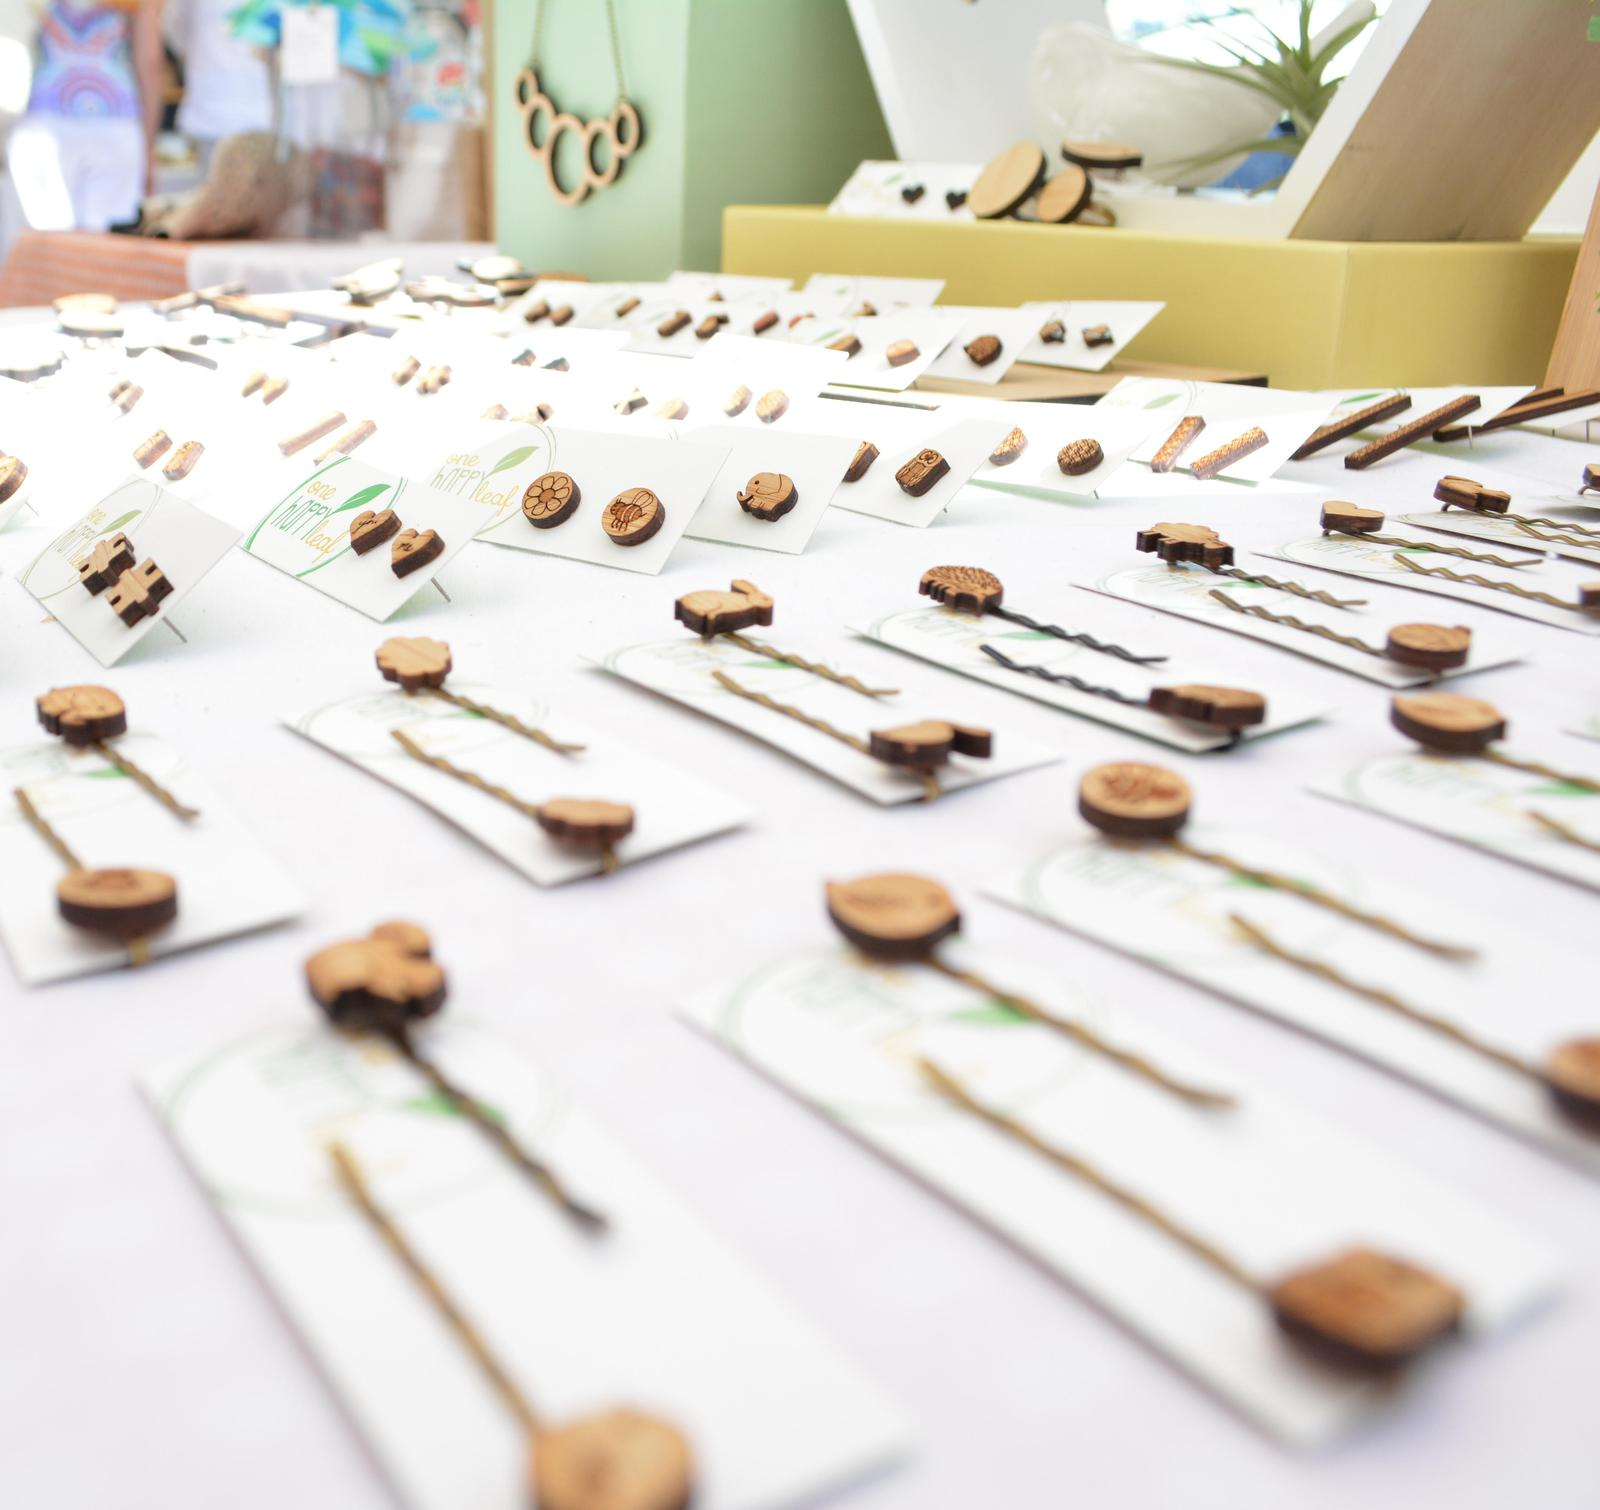 Hair pins from market display